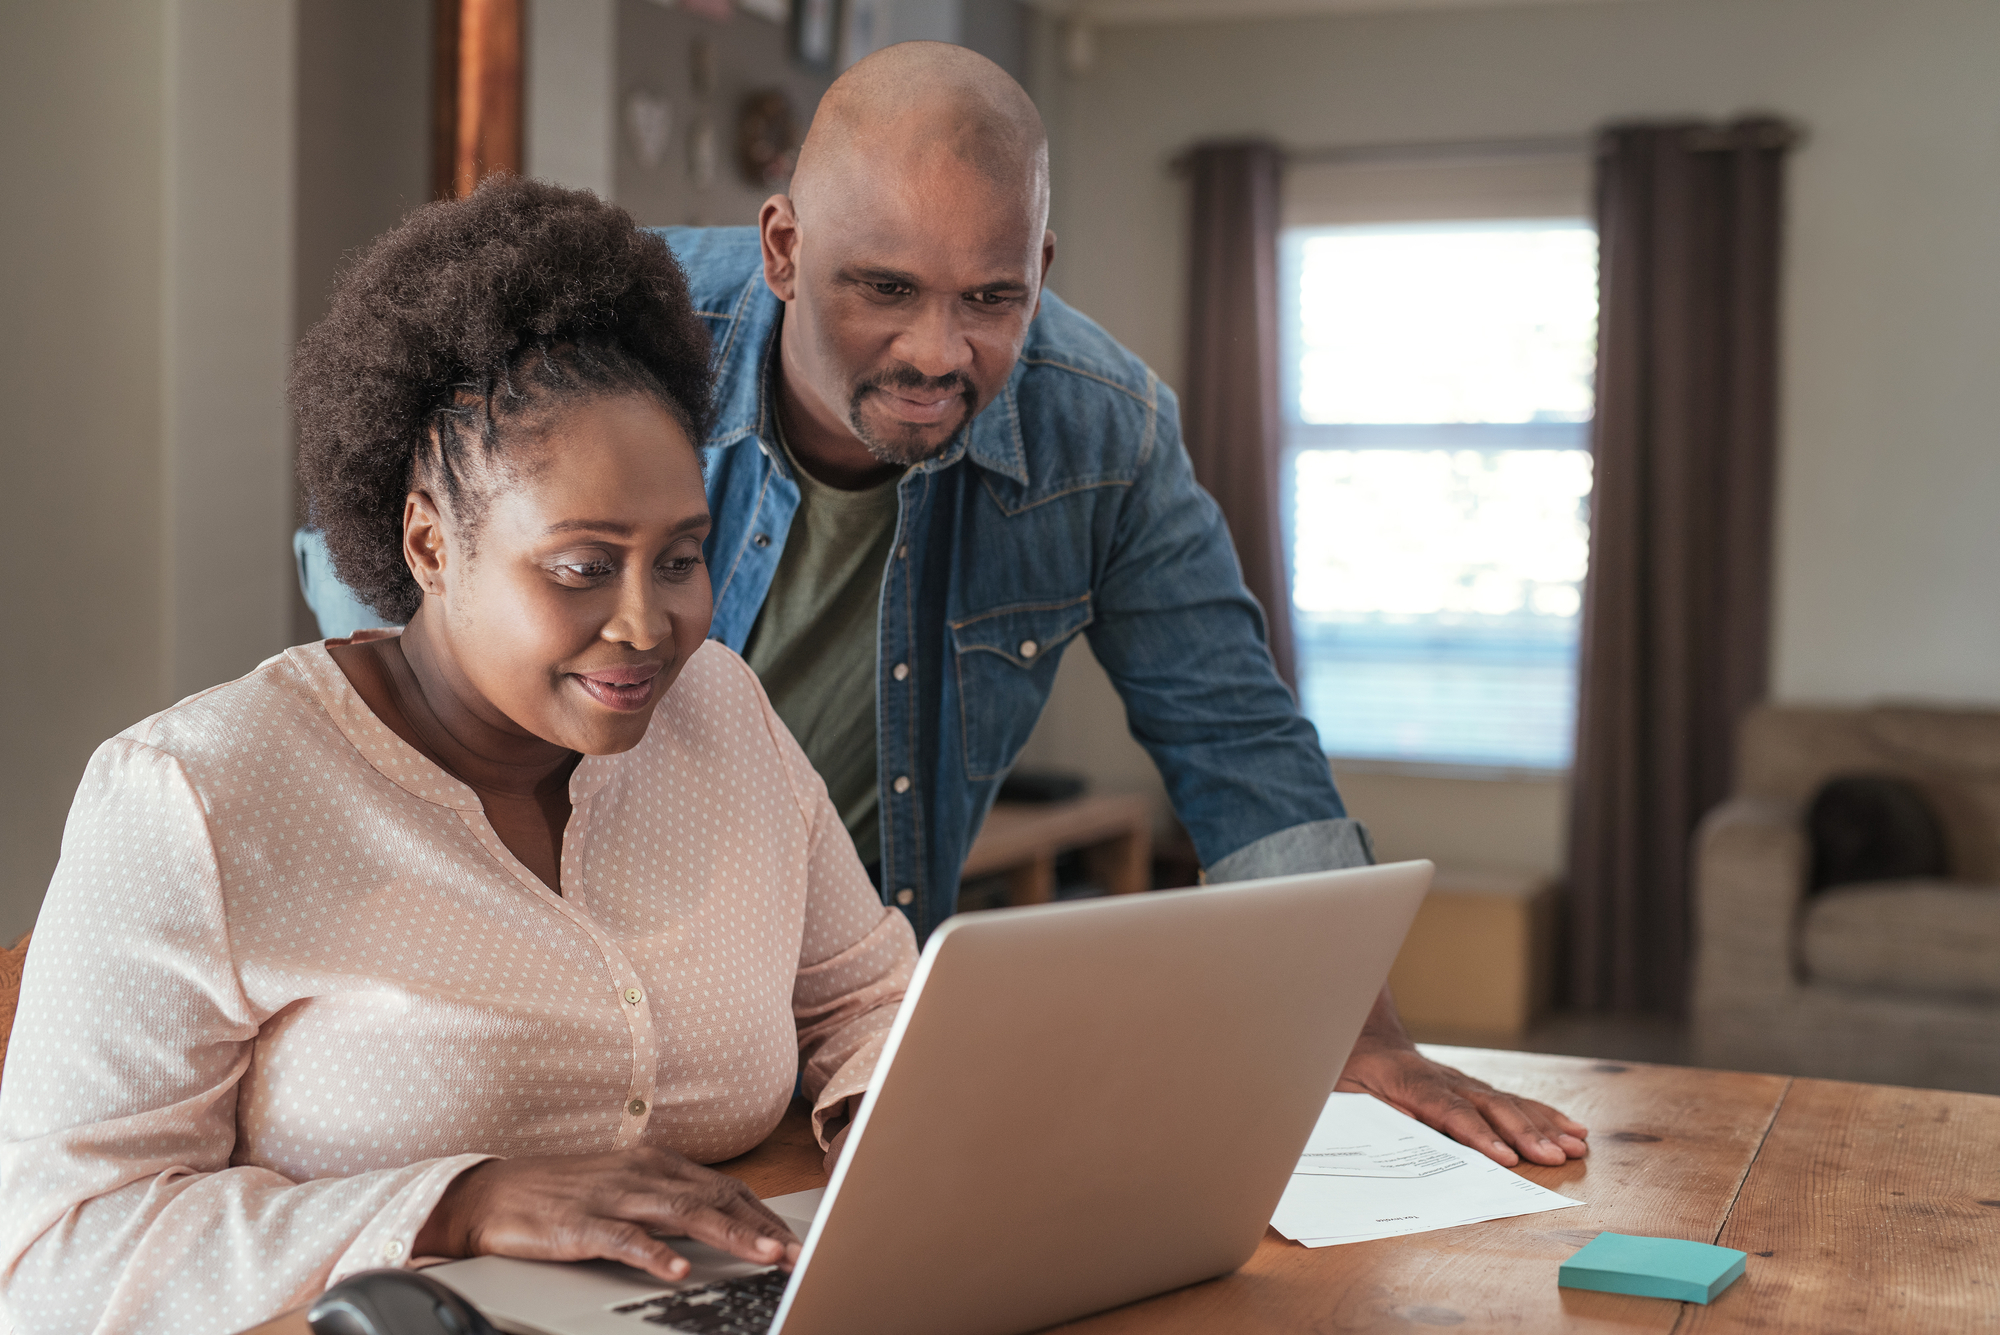 Couple paying bills with laptop